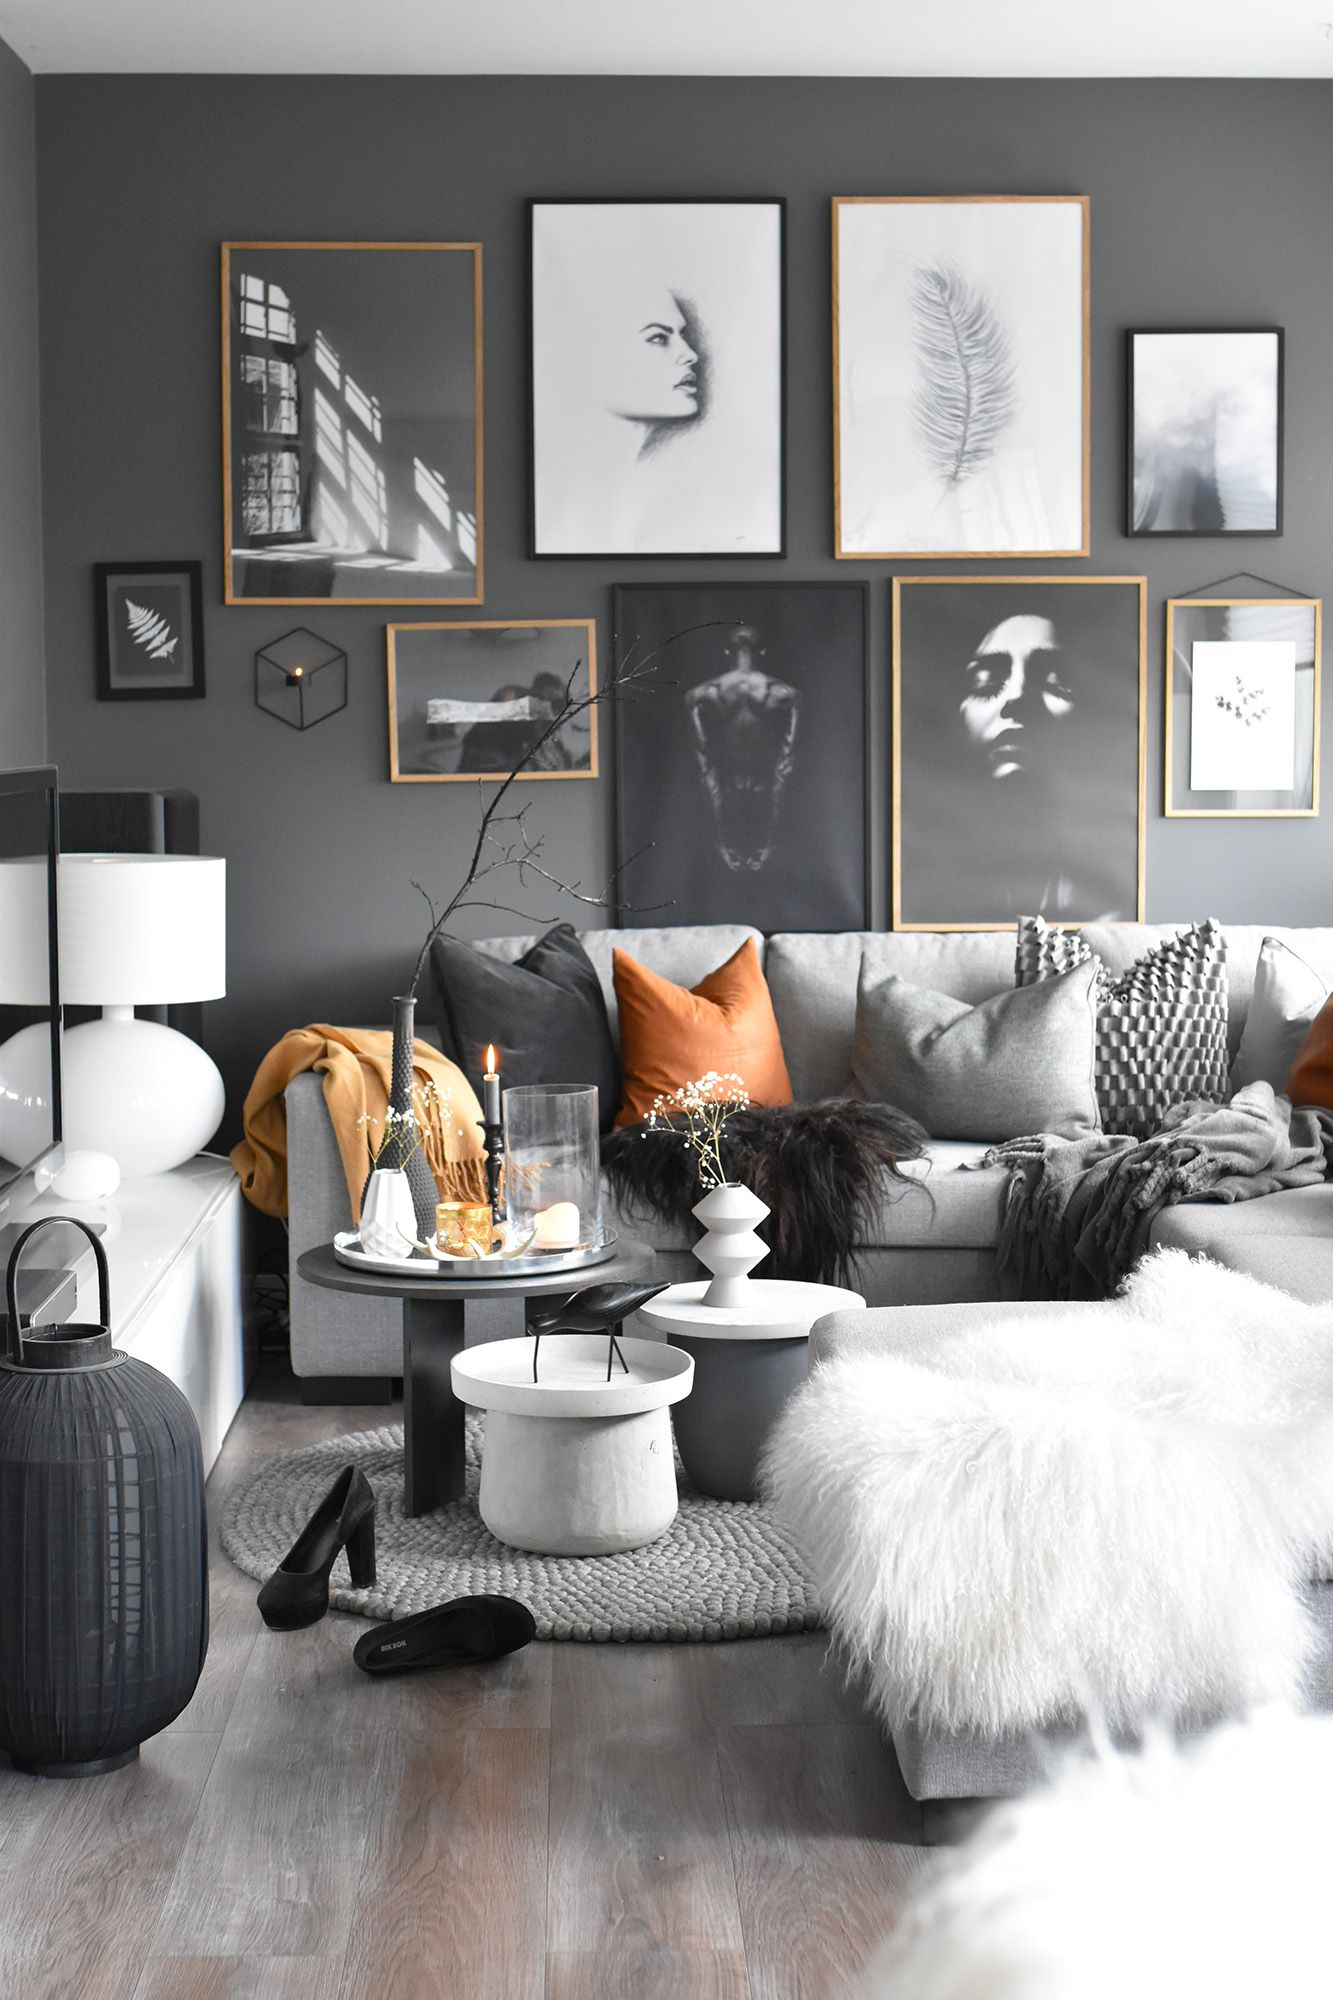 Genial Livingroom In A New Style And What Iu0027ve Been Up To! U2013 Maren